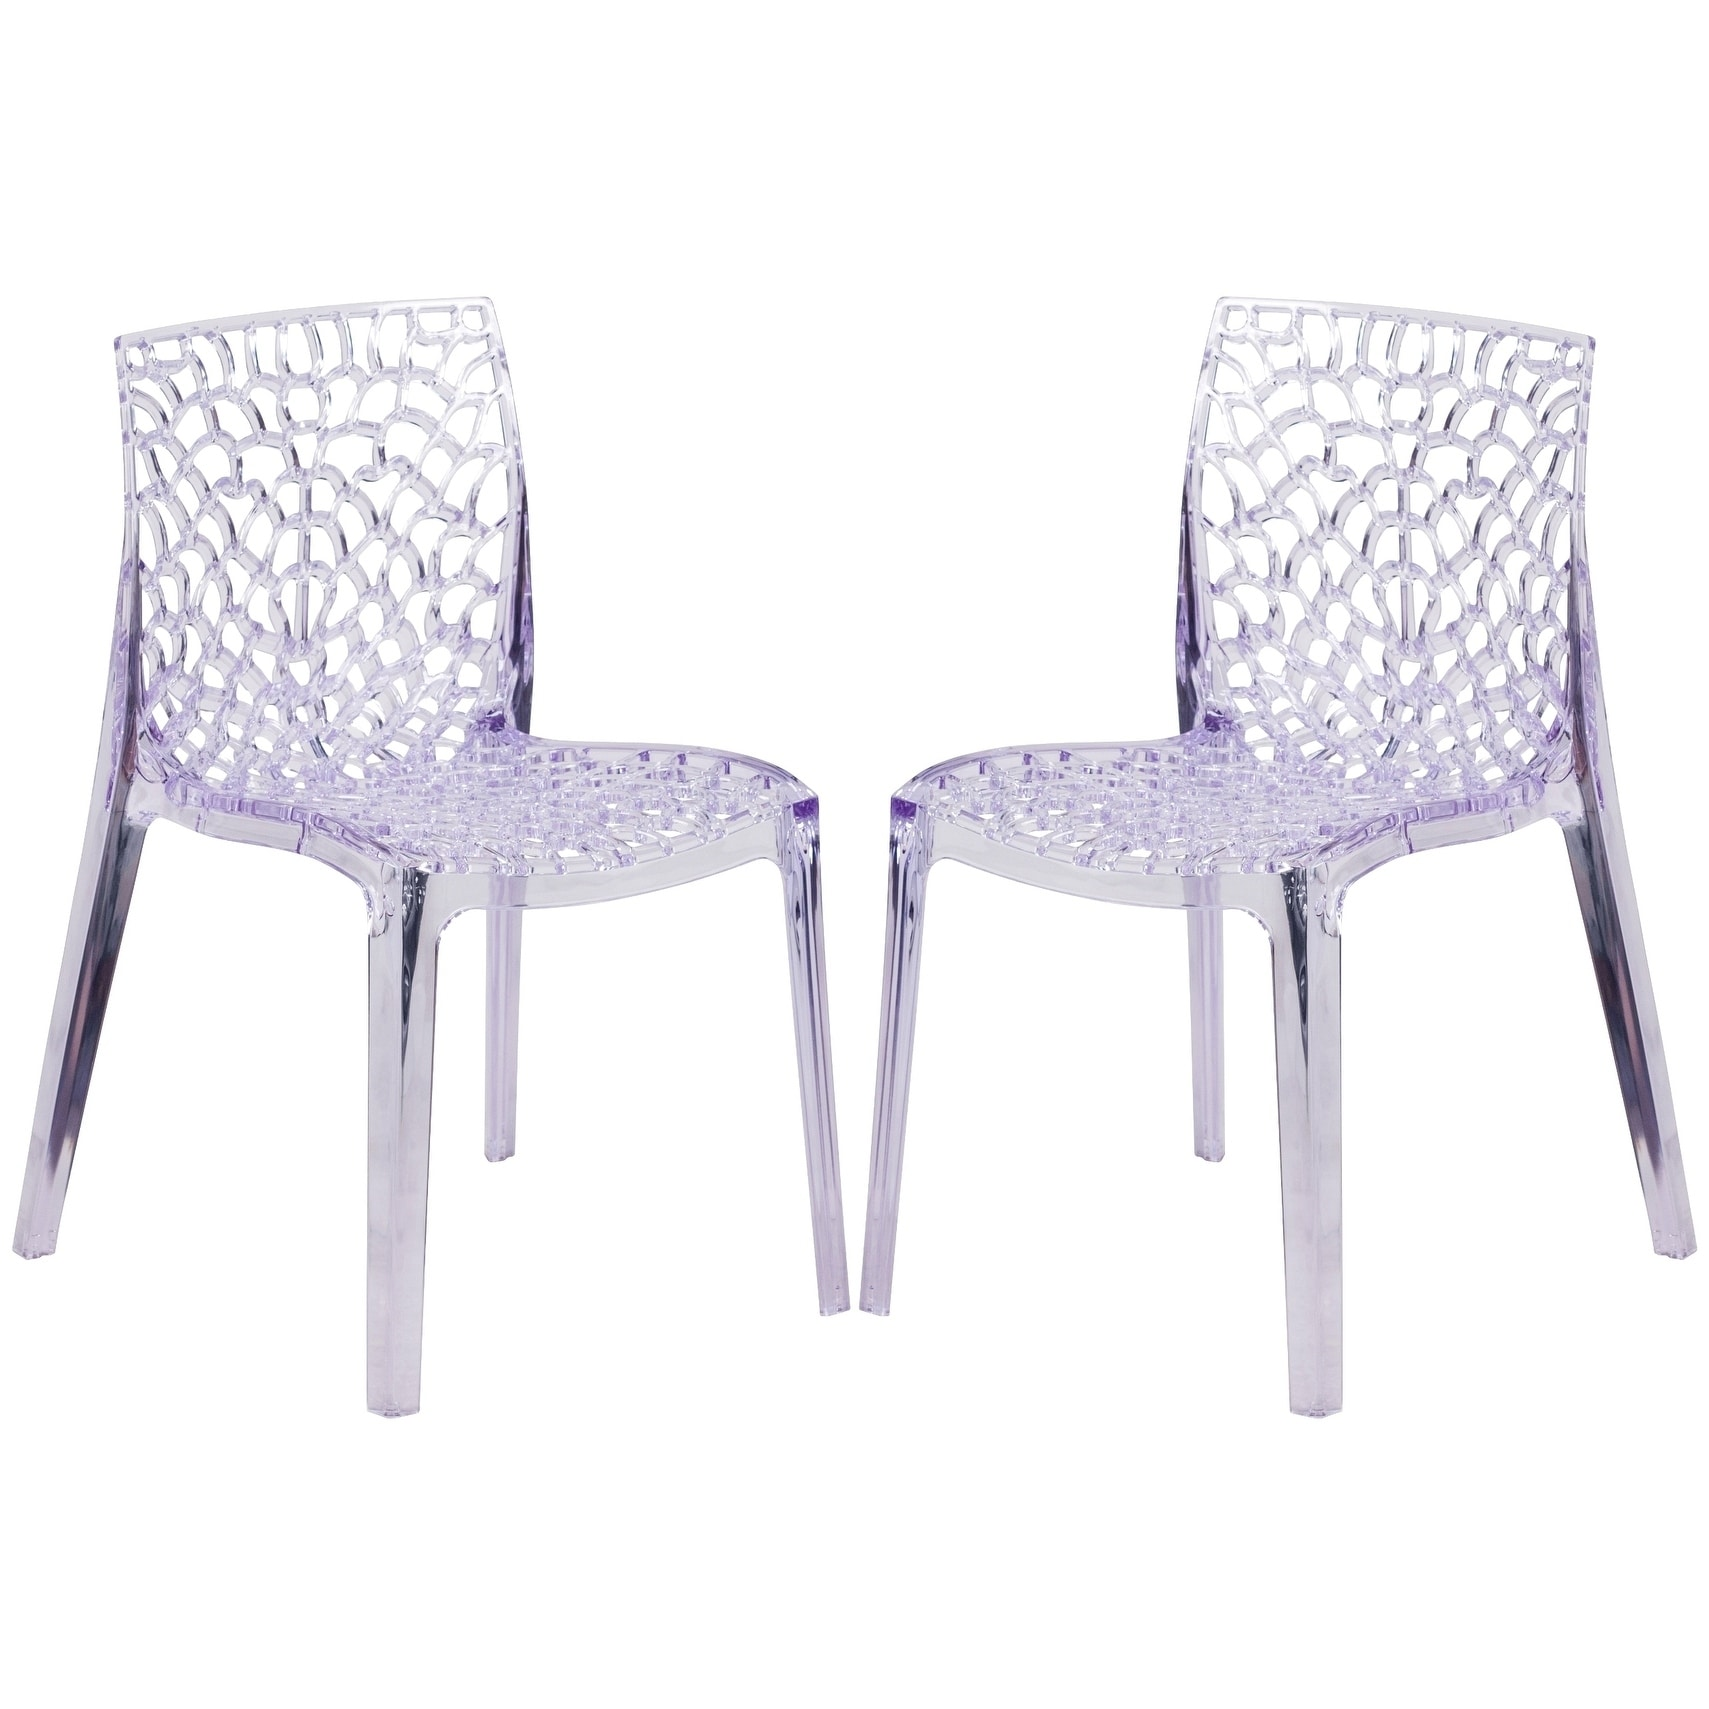 A Line Furniture Artistic Fluid Design Transparent Crystal Chair